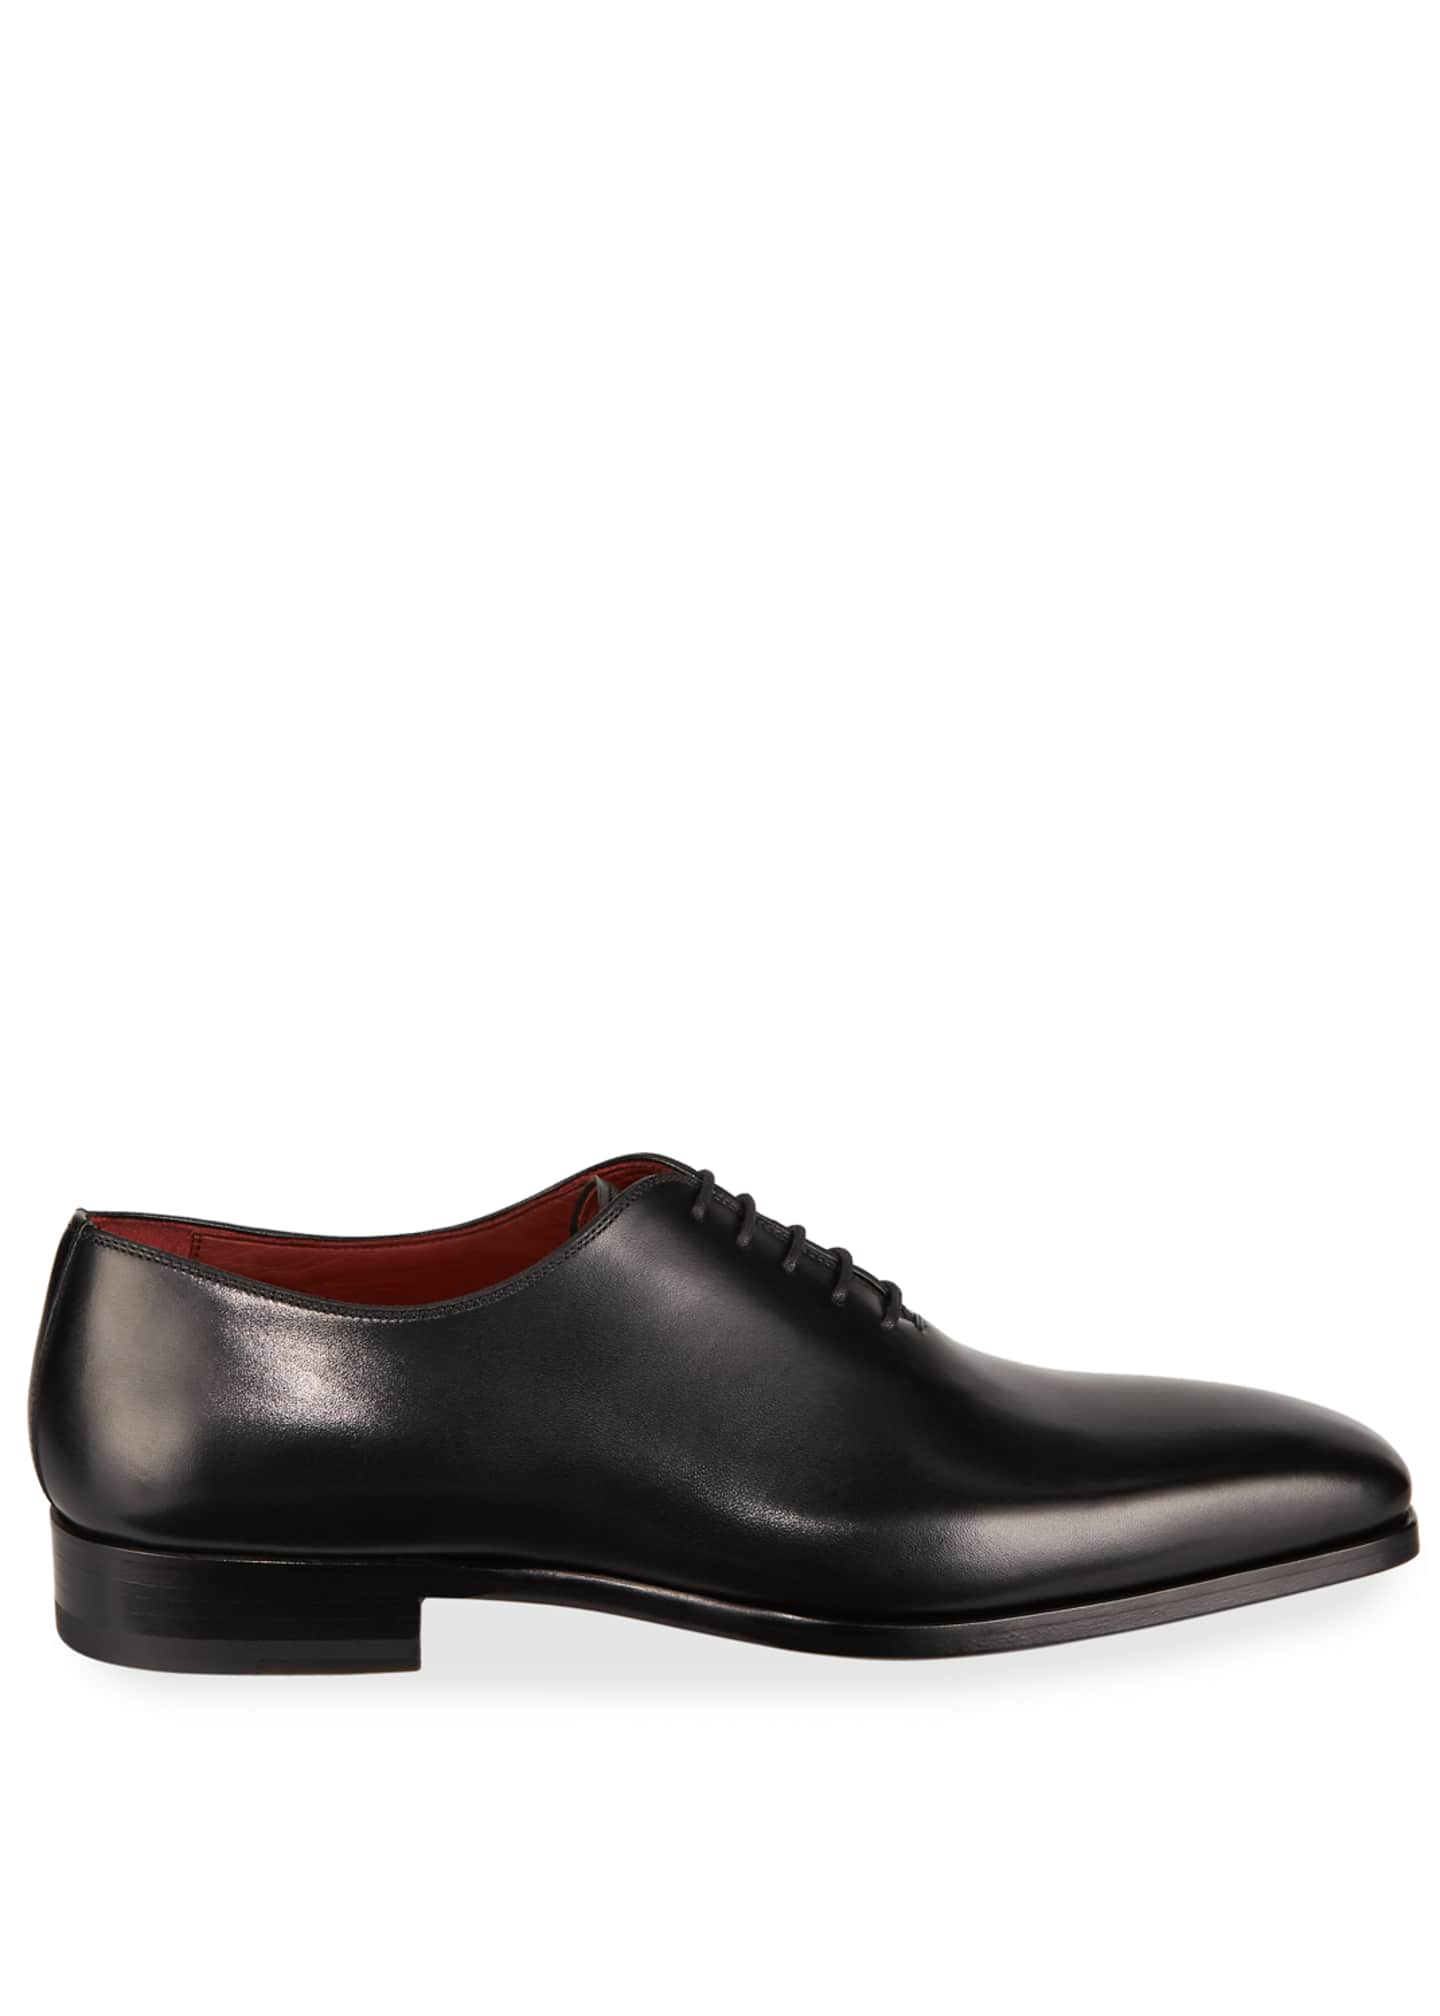 Image 3 of 3: Men's Bol Arcade Leather Dress Shoes